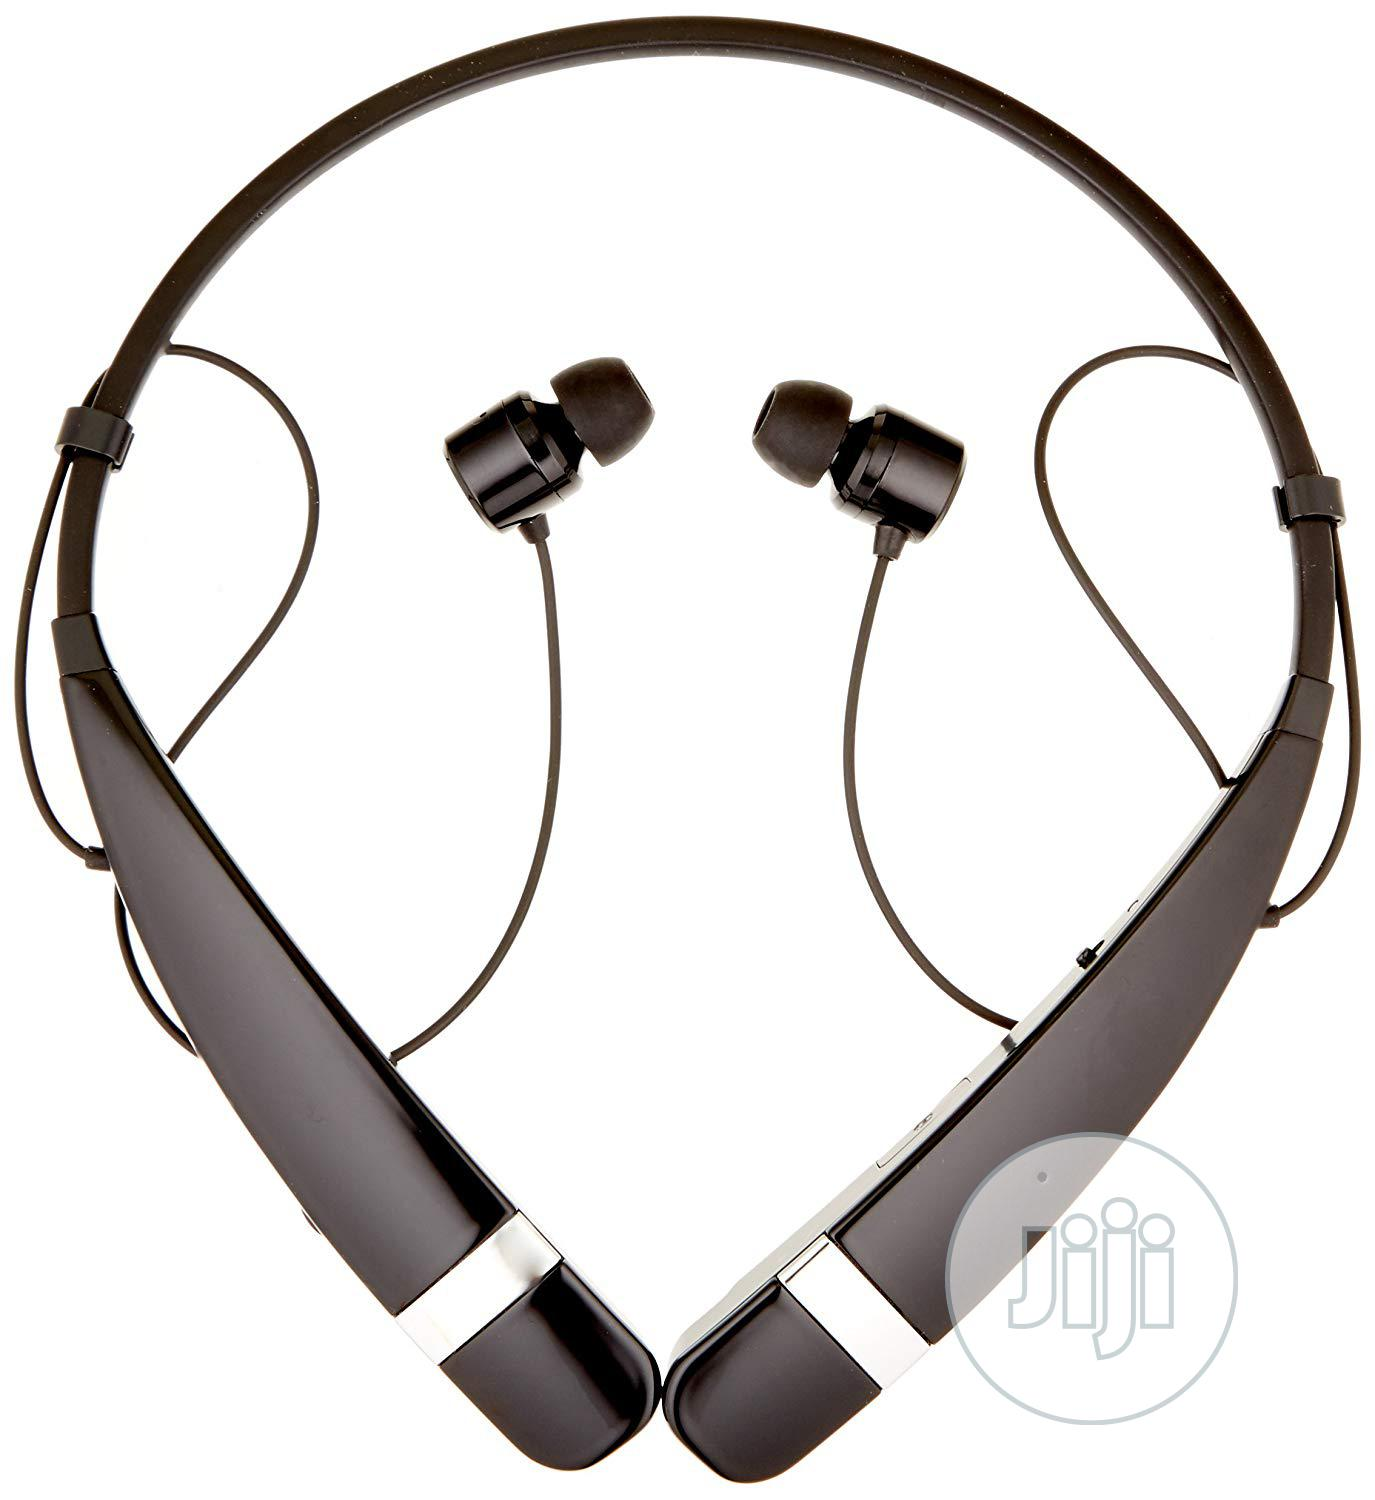 LG Tone Pro Bluetooth Wireless Stereo Headset - HBS-760 | Accessories for Mobile Phones & Tablets for sale in Ikeja, Lagos State, Nigeria